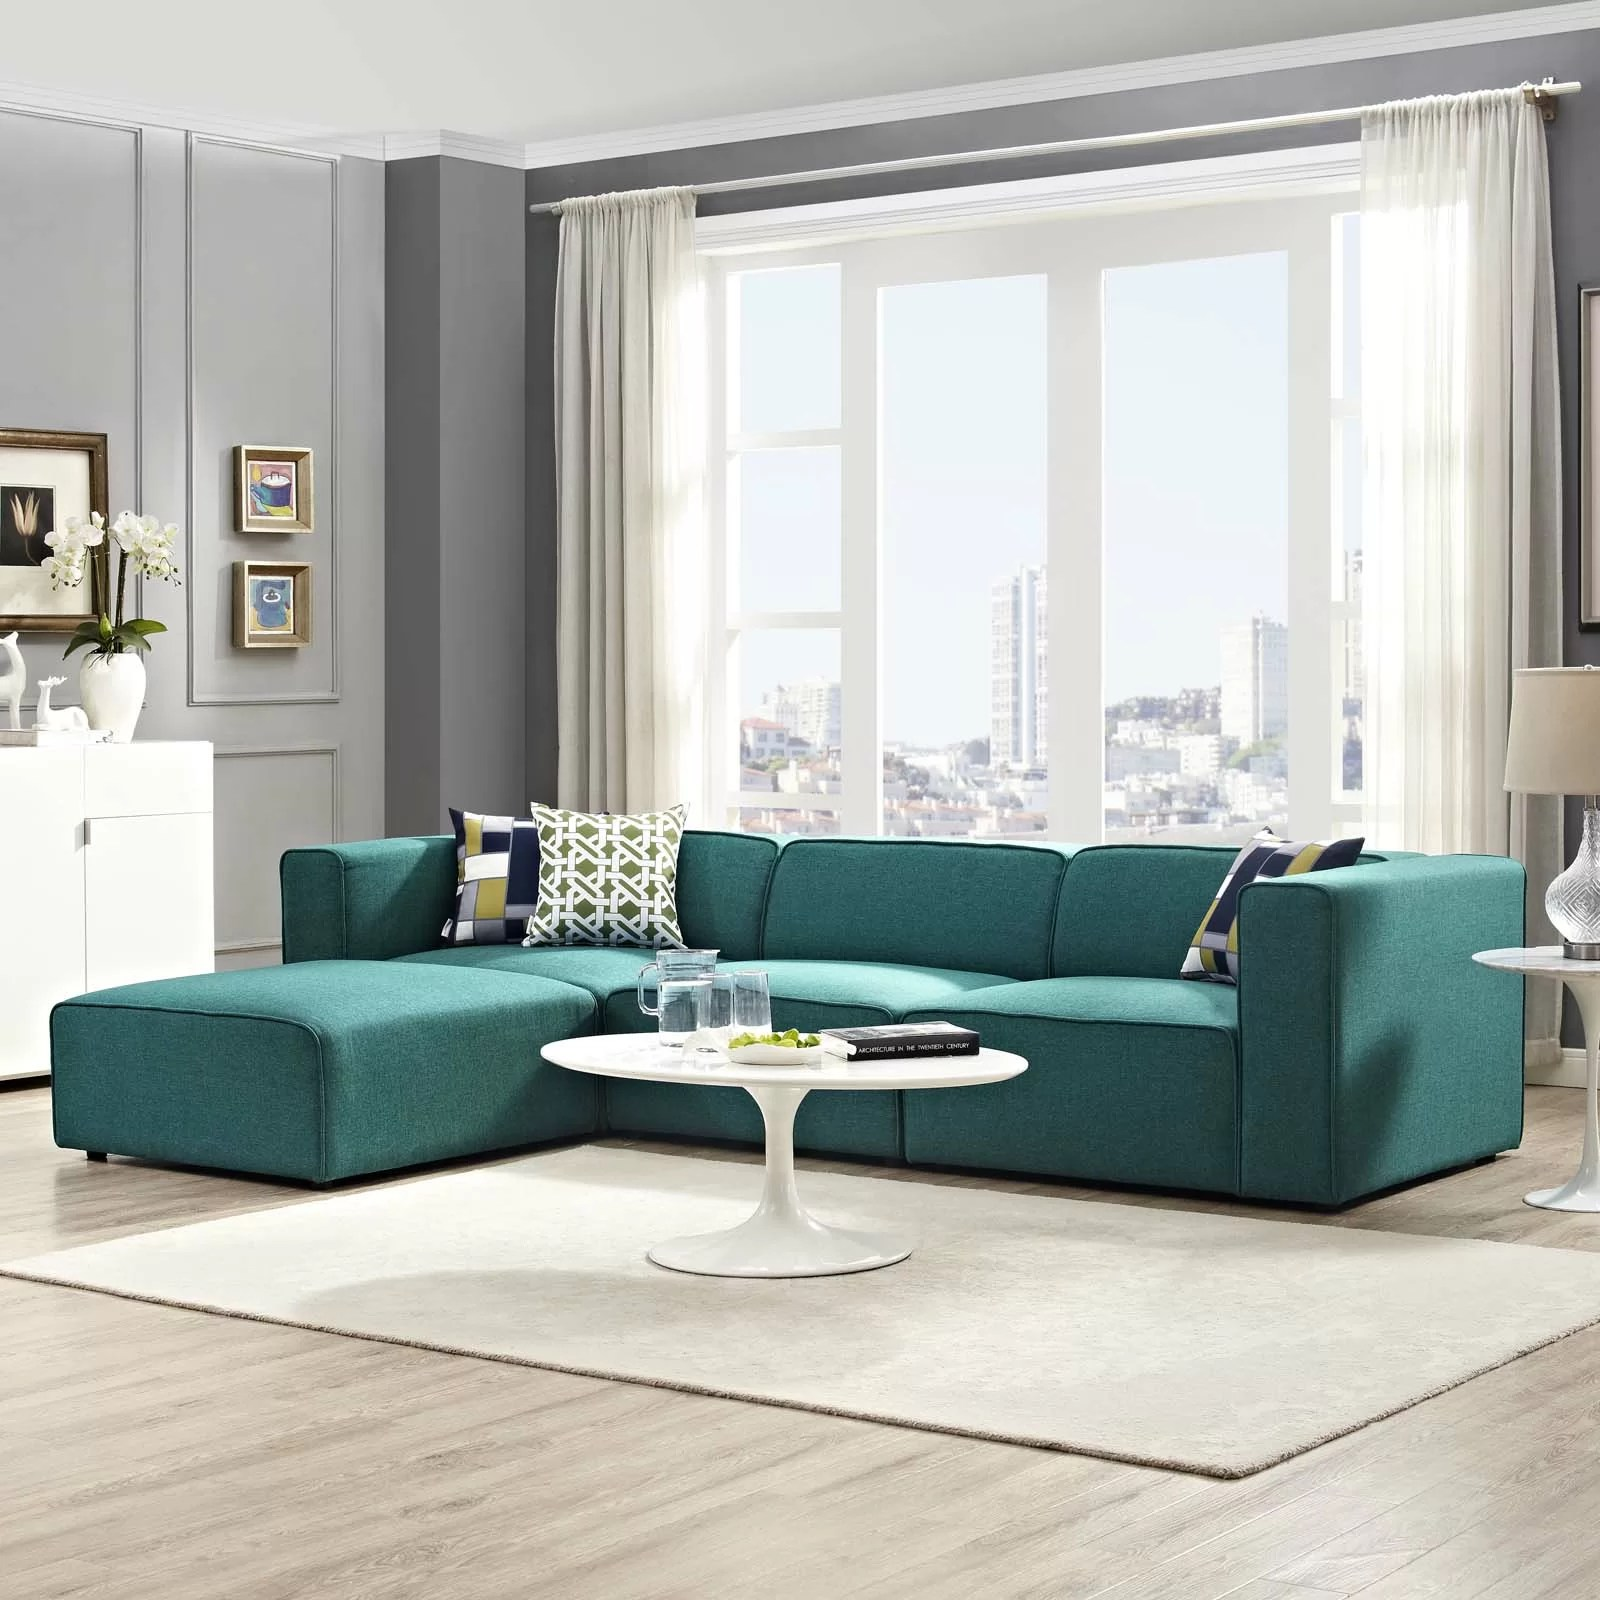 New Style Sofa Set Design Modern Contemporary Living Room Furniture Allmodern